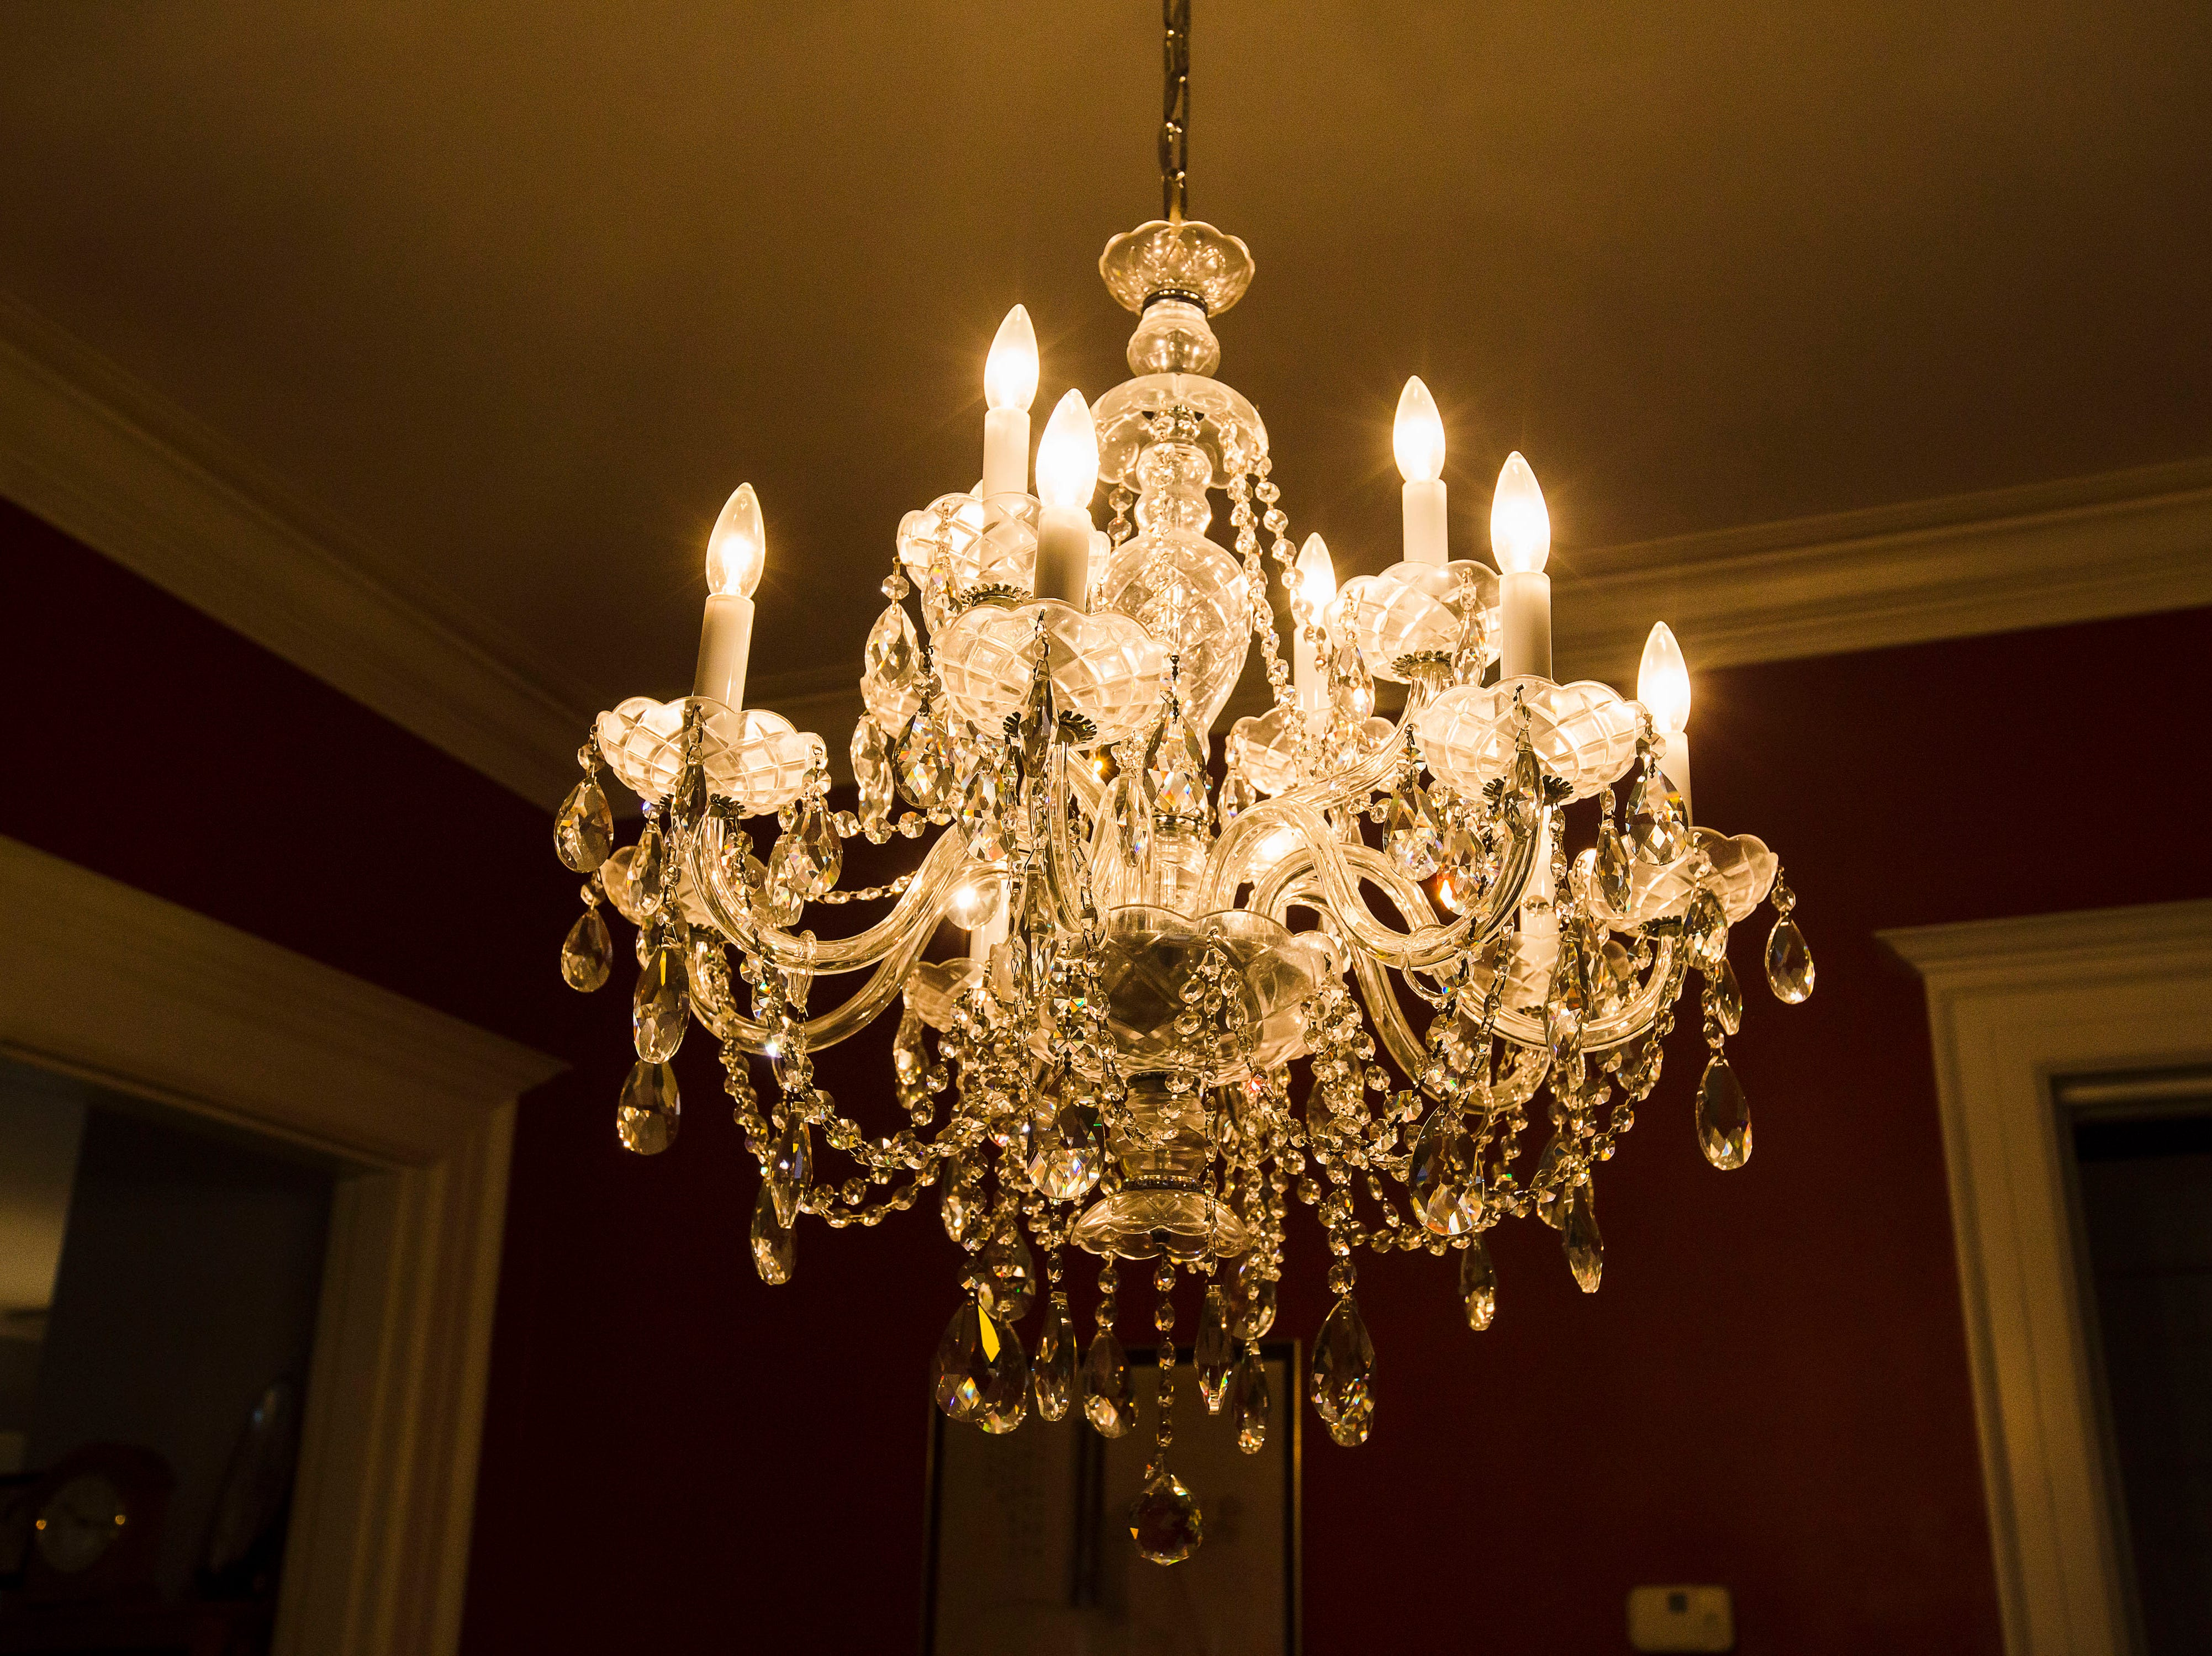 Dining room chandelier of historic Cherokee Triangle home  in Louisville, KY.